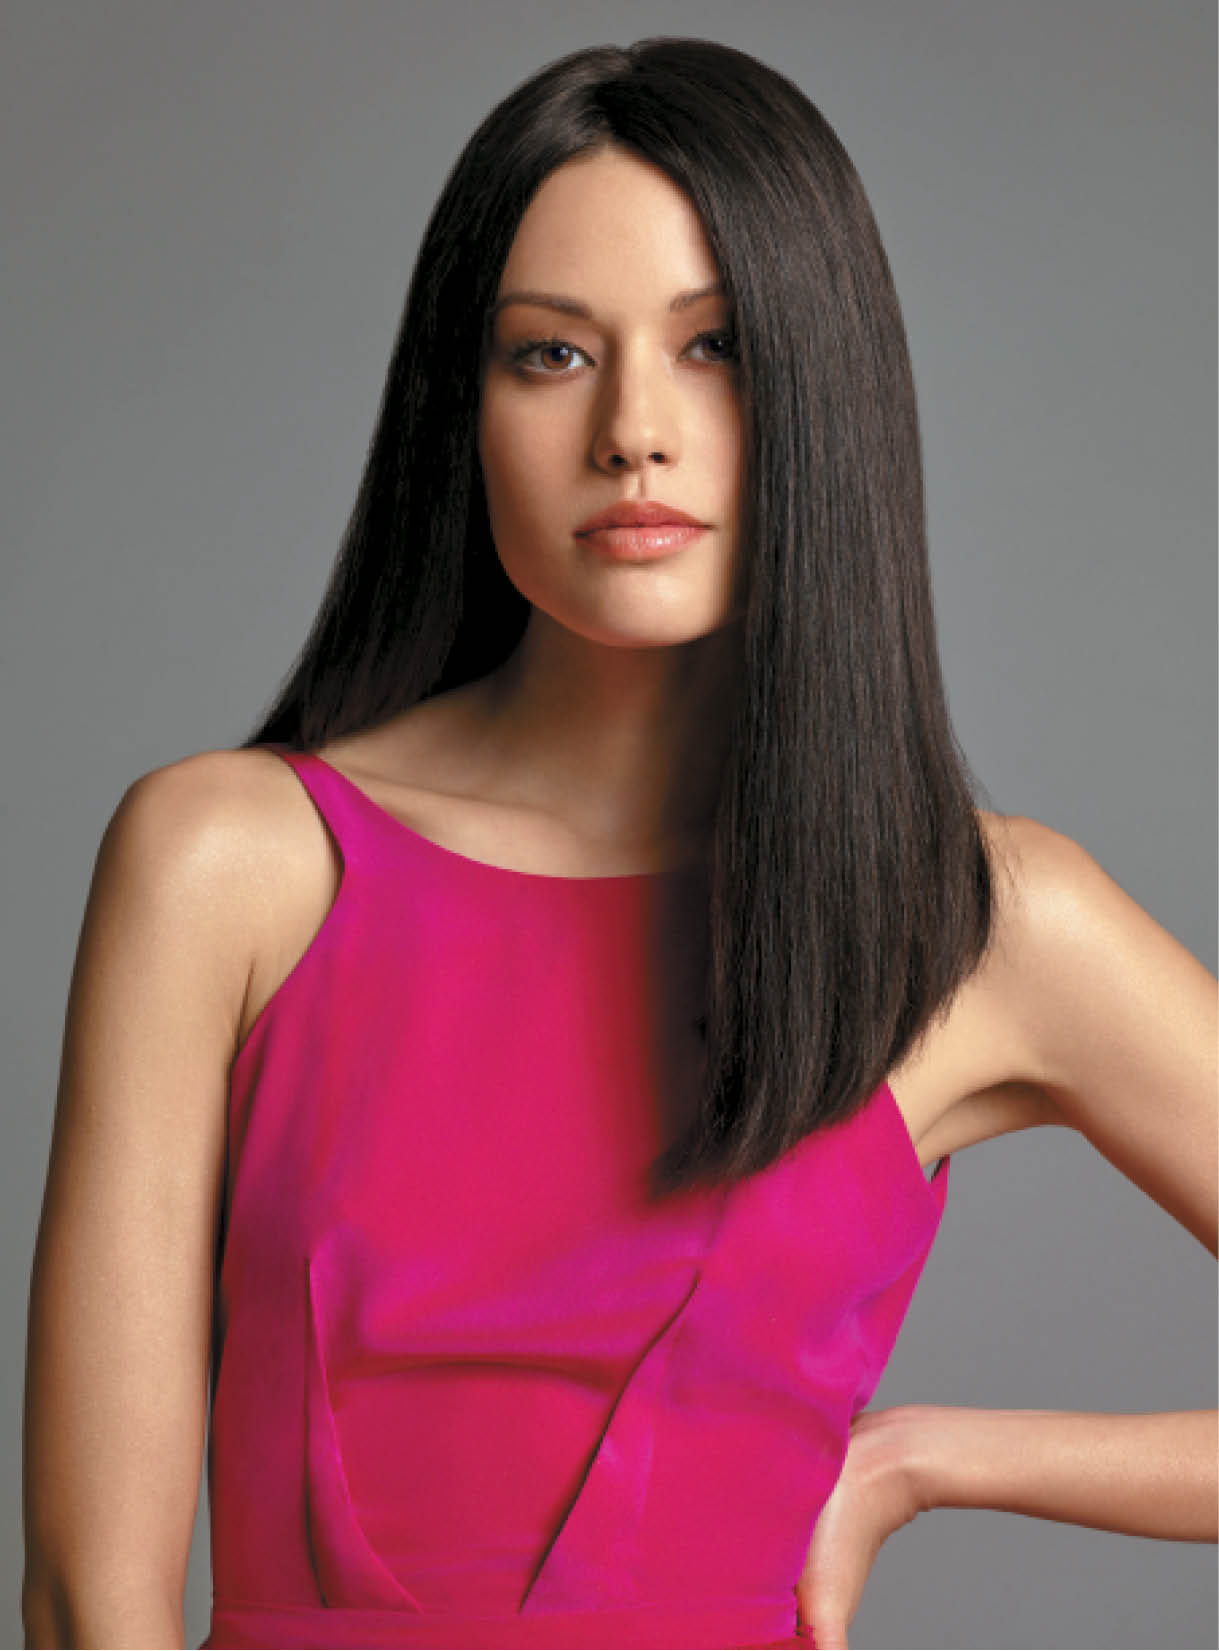 Hizumi's hair was deepened to a level 4 chocolate brown with a gloss and half an ampule. Luciano then planned to lift the dark shade to a platinum blonde.